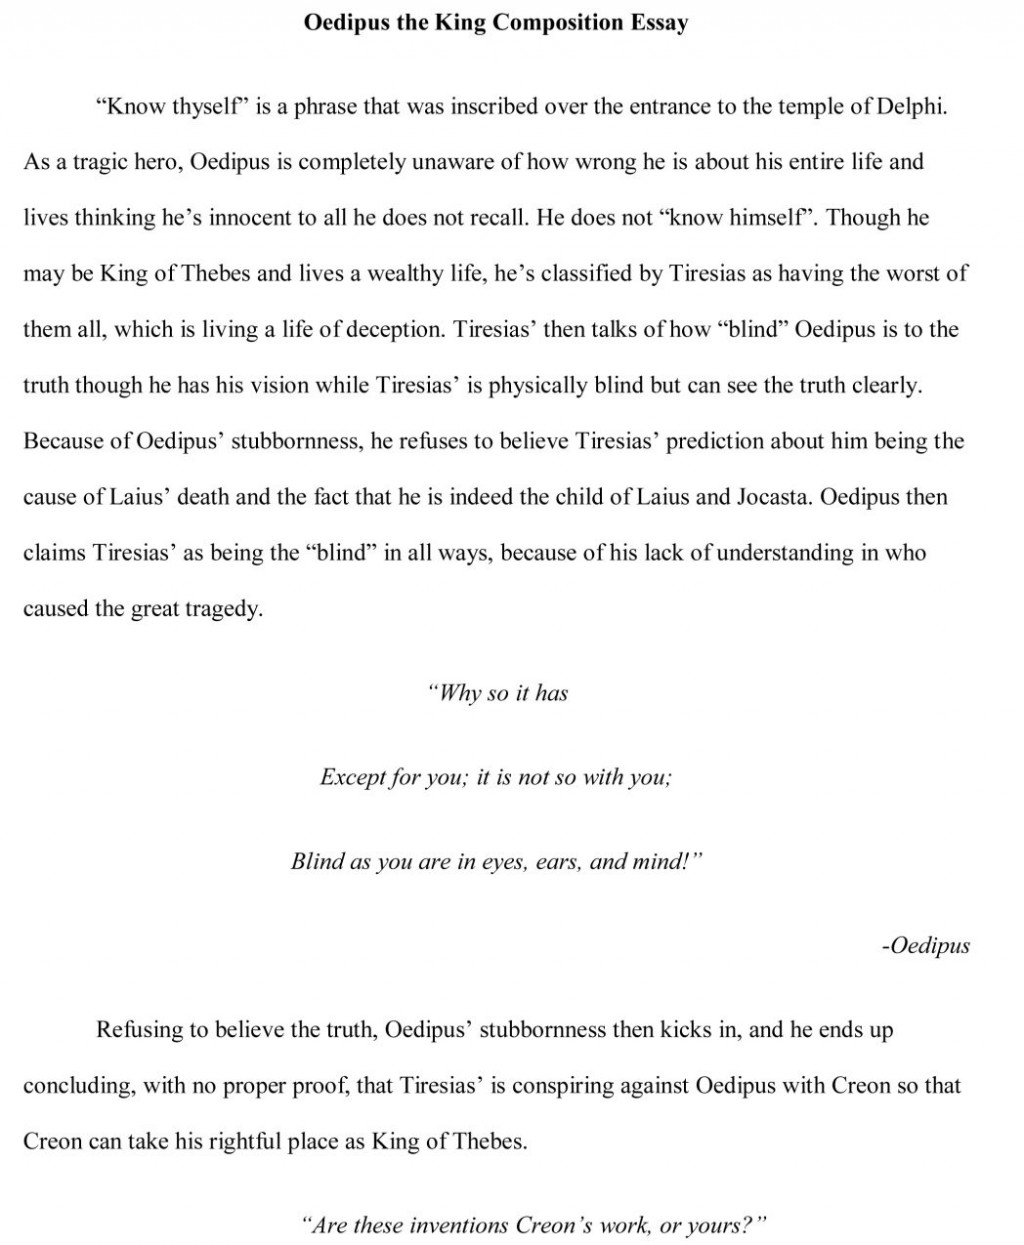 004 Essay Example Compare And Contrast College Topics Easy For Topic Ideas Oedipus Free S Persuasive Students Application Research Paper Descriptive Admission Prompt Imposing Argumentative Without High School Large